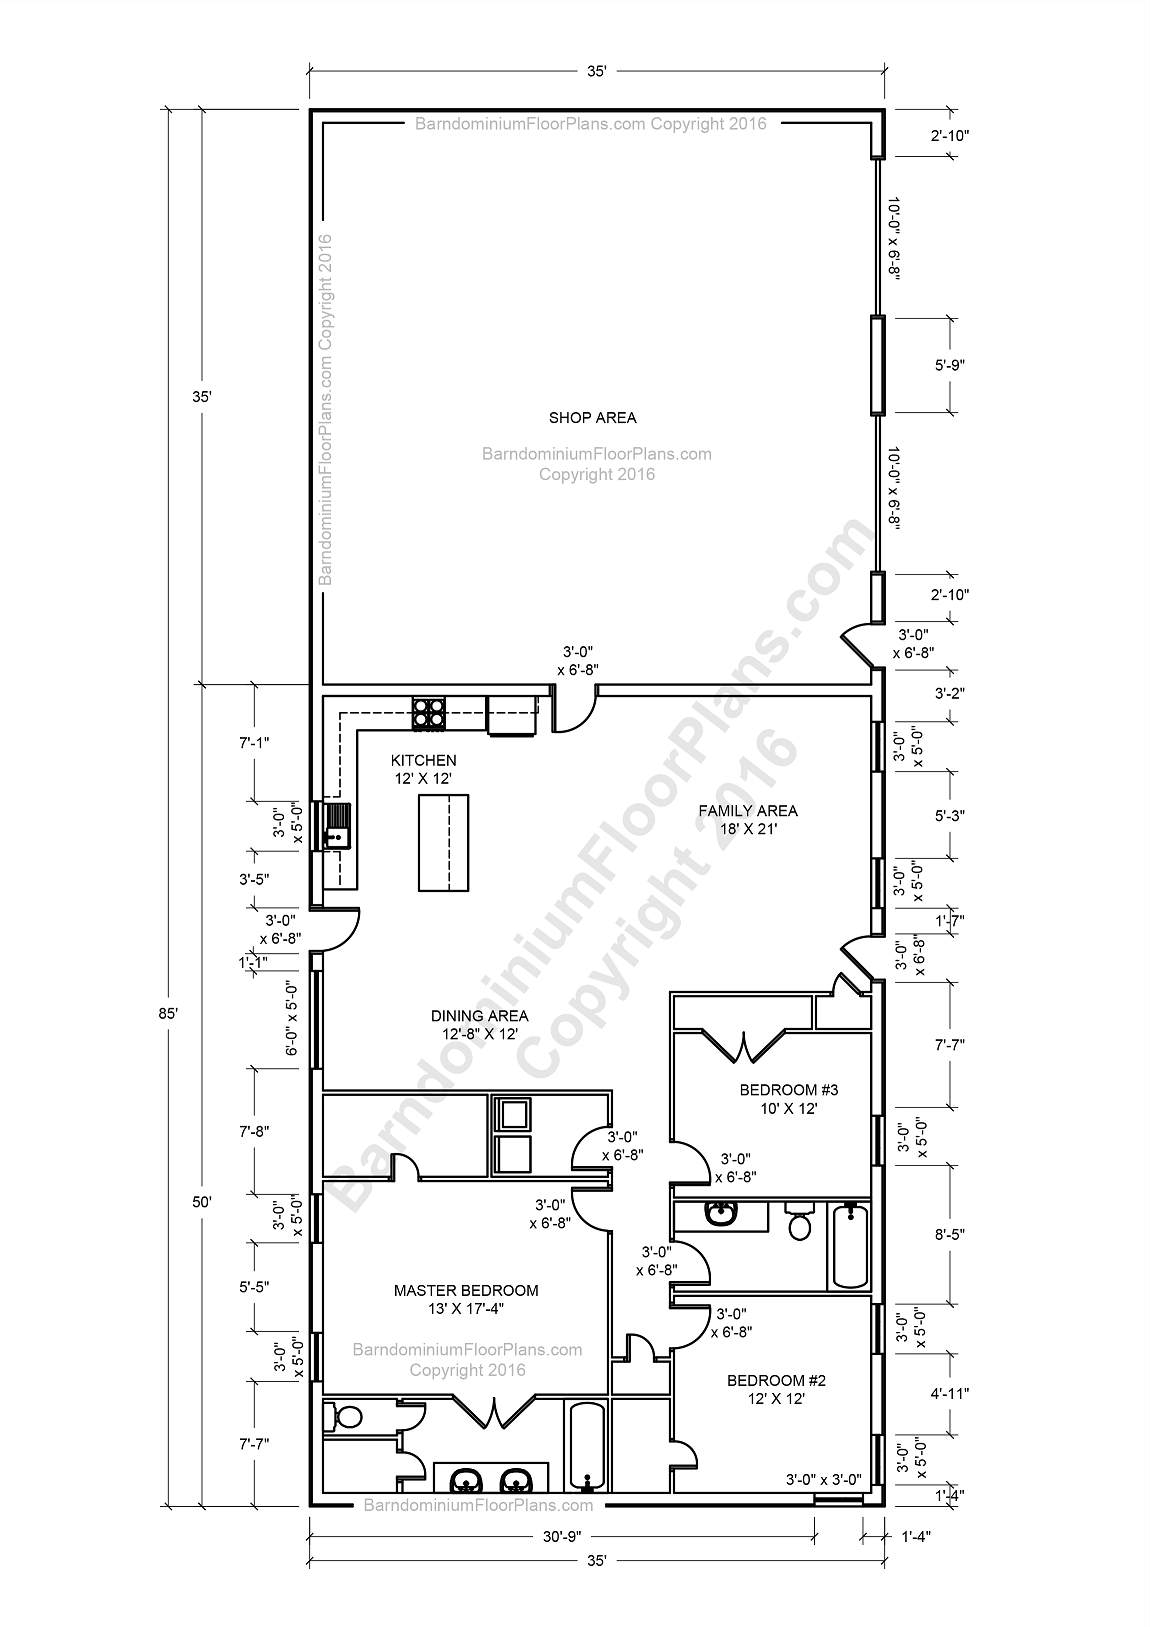 Best barndominium floor plans for planning your for 40x60 house plans